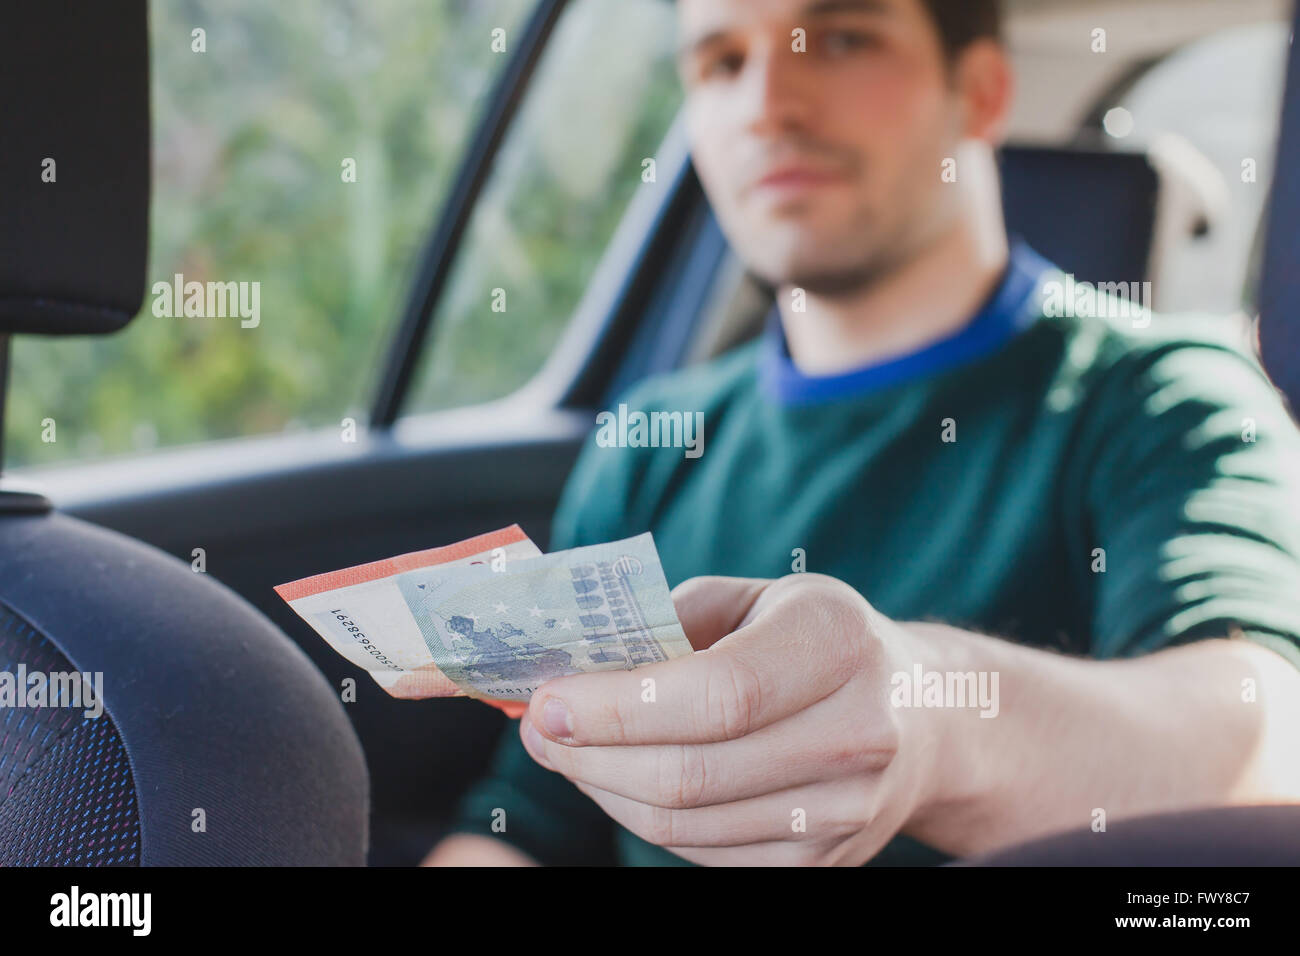 pay by cash in taxi, closeup of hand of passenger giving money to the driver in car - Stock Image